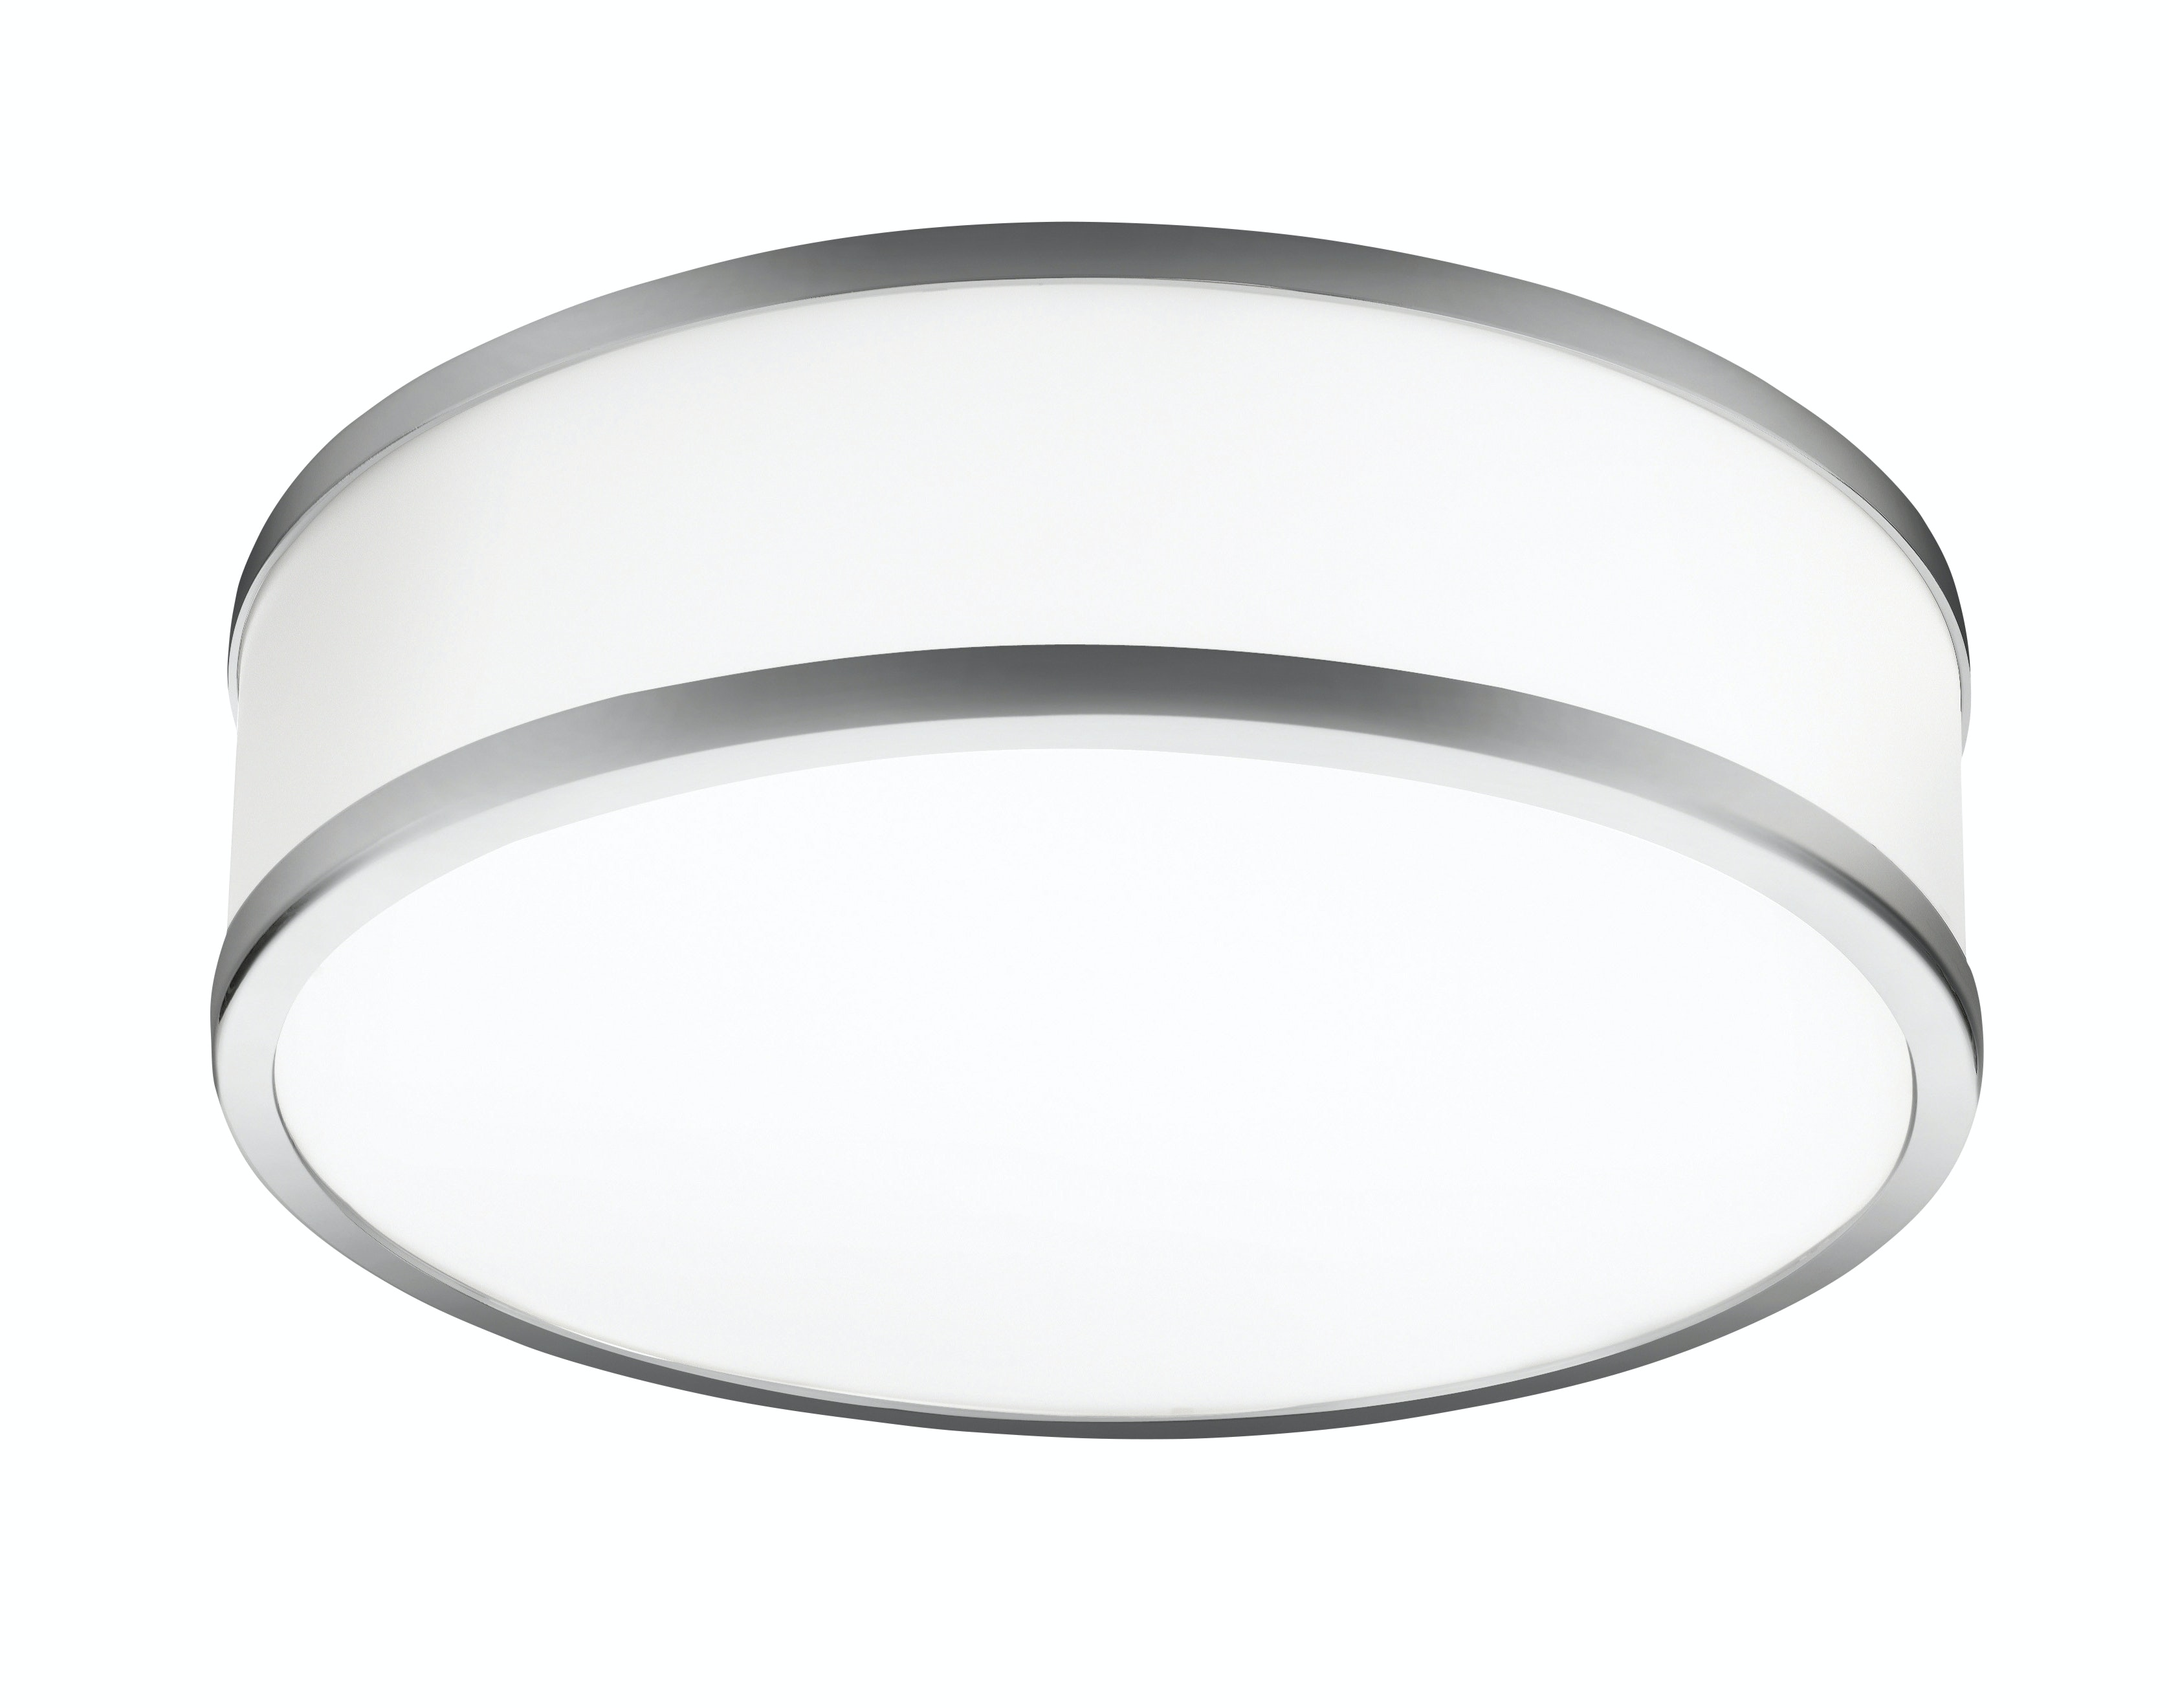 Badrumslampa Philips Dew Led E27 1x20W Krom IP44